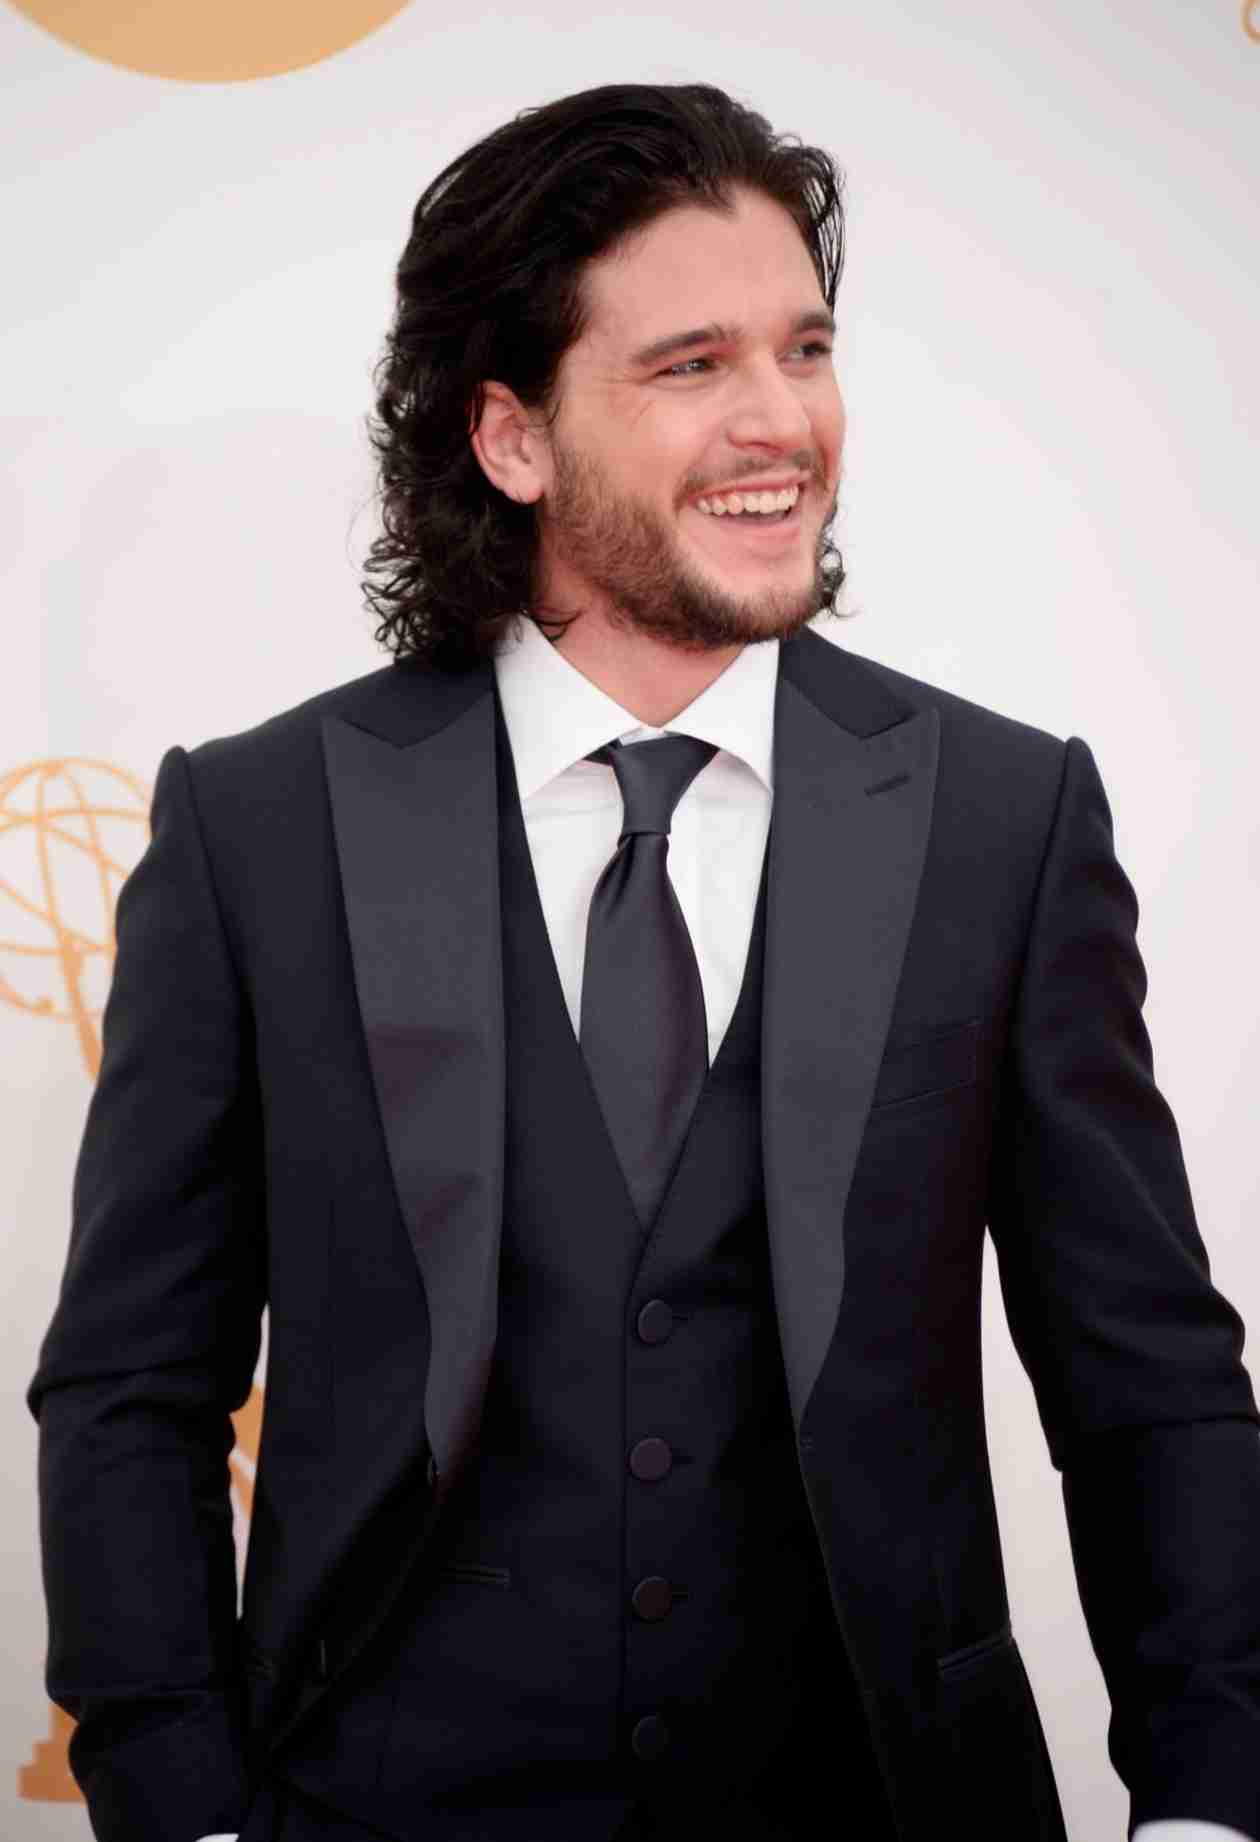 """Game of Thrones Star Kit Harington on Being Objectified: """"I Enjoy It"""""""